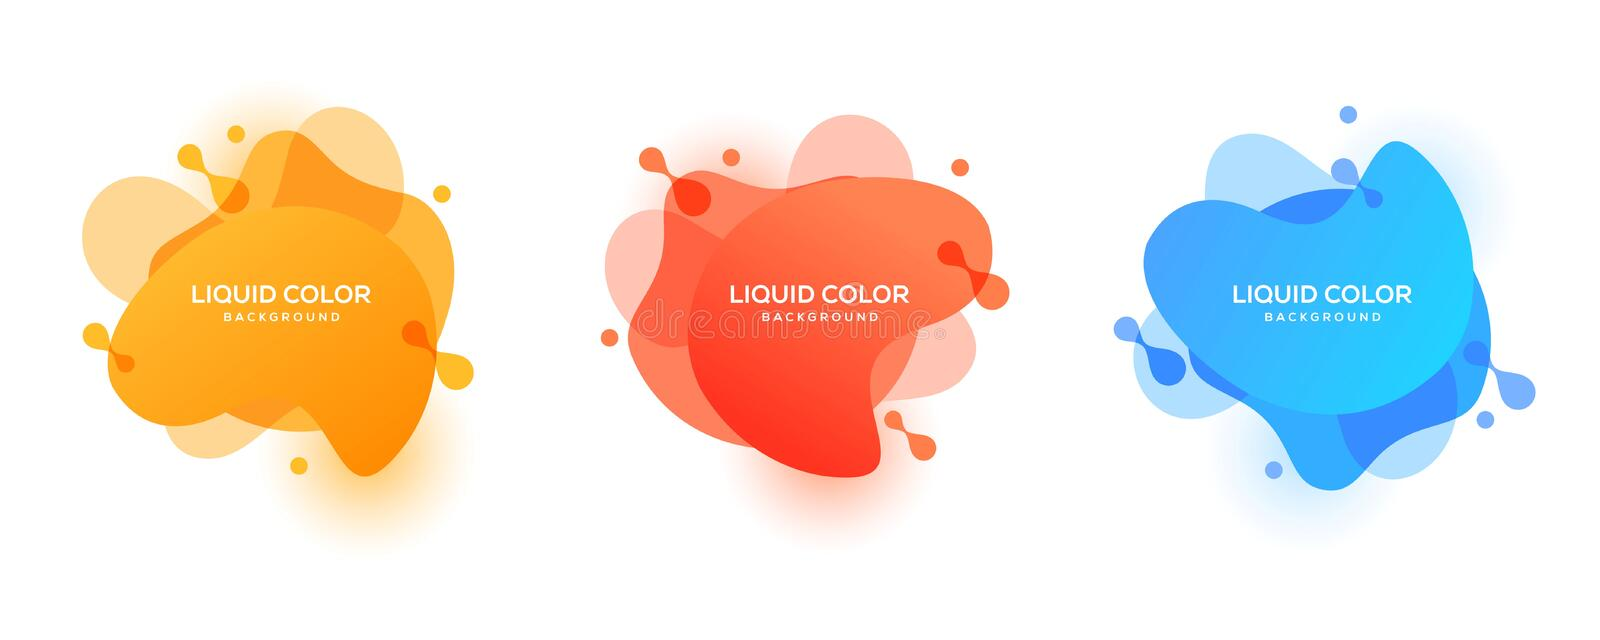 Liquid color background vector design template. Fluid gradient shapes composition. Liquid color background design. Fluid gradient shapes composition. Futuristic vector illustration